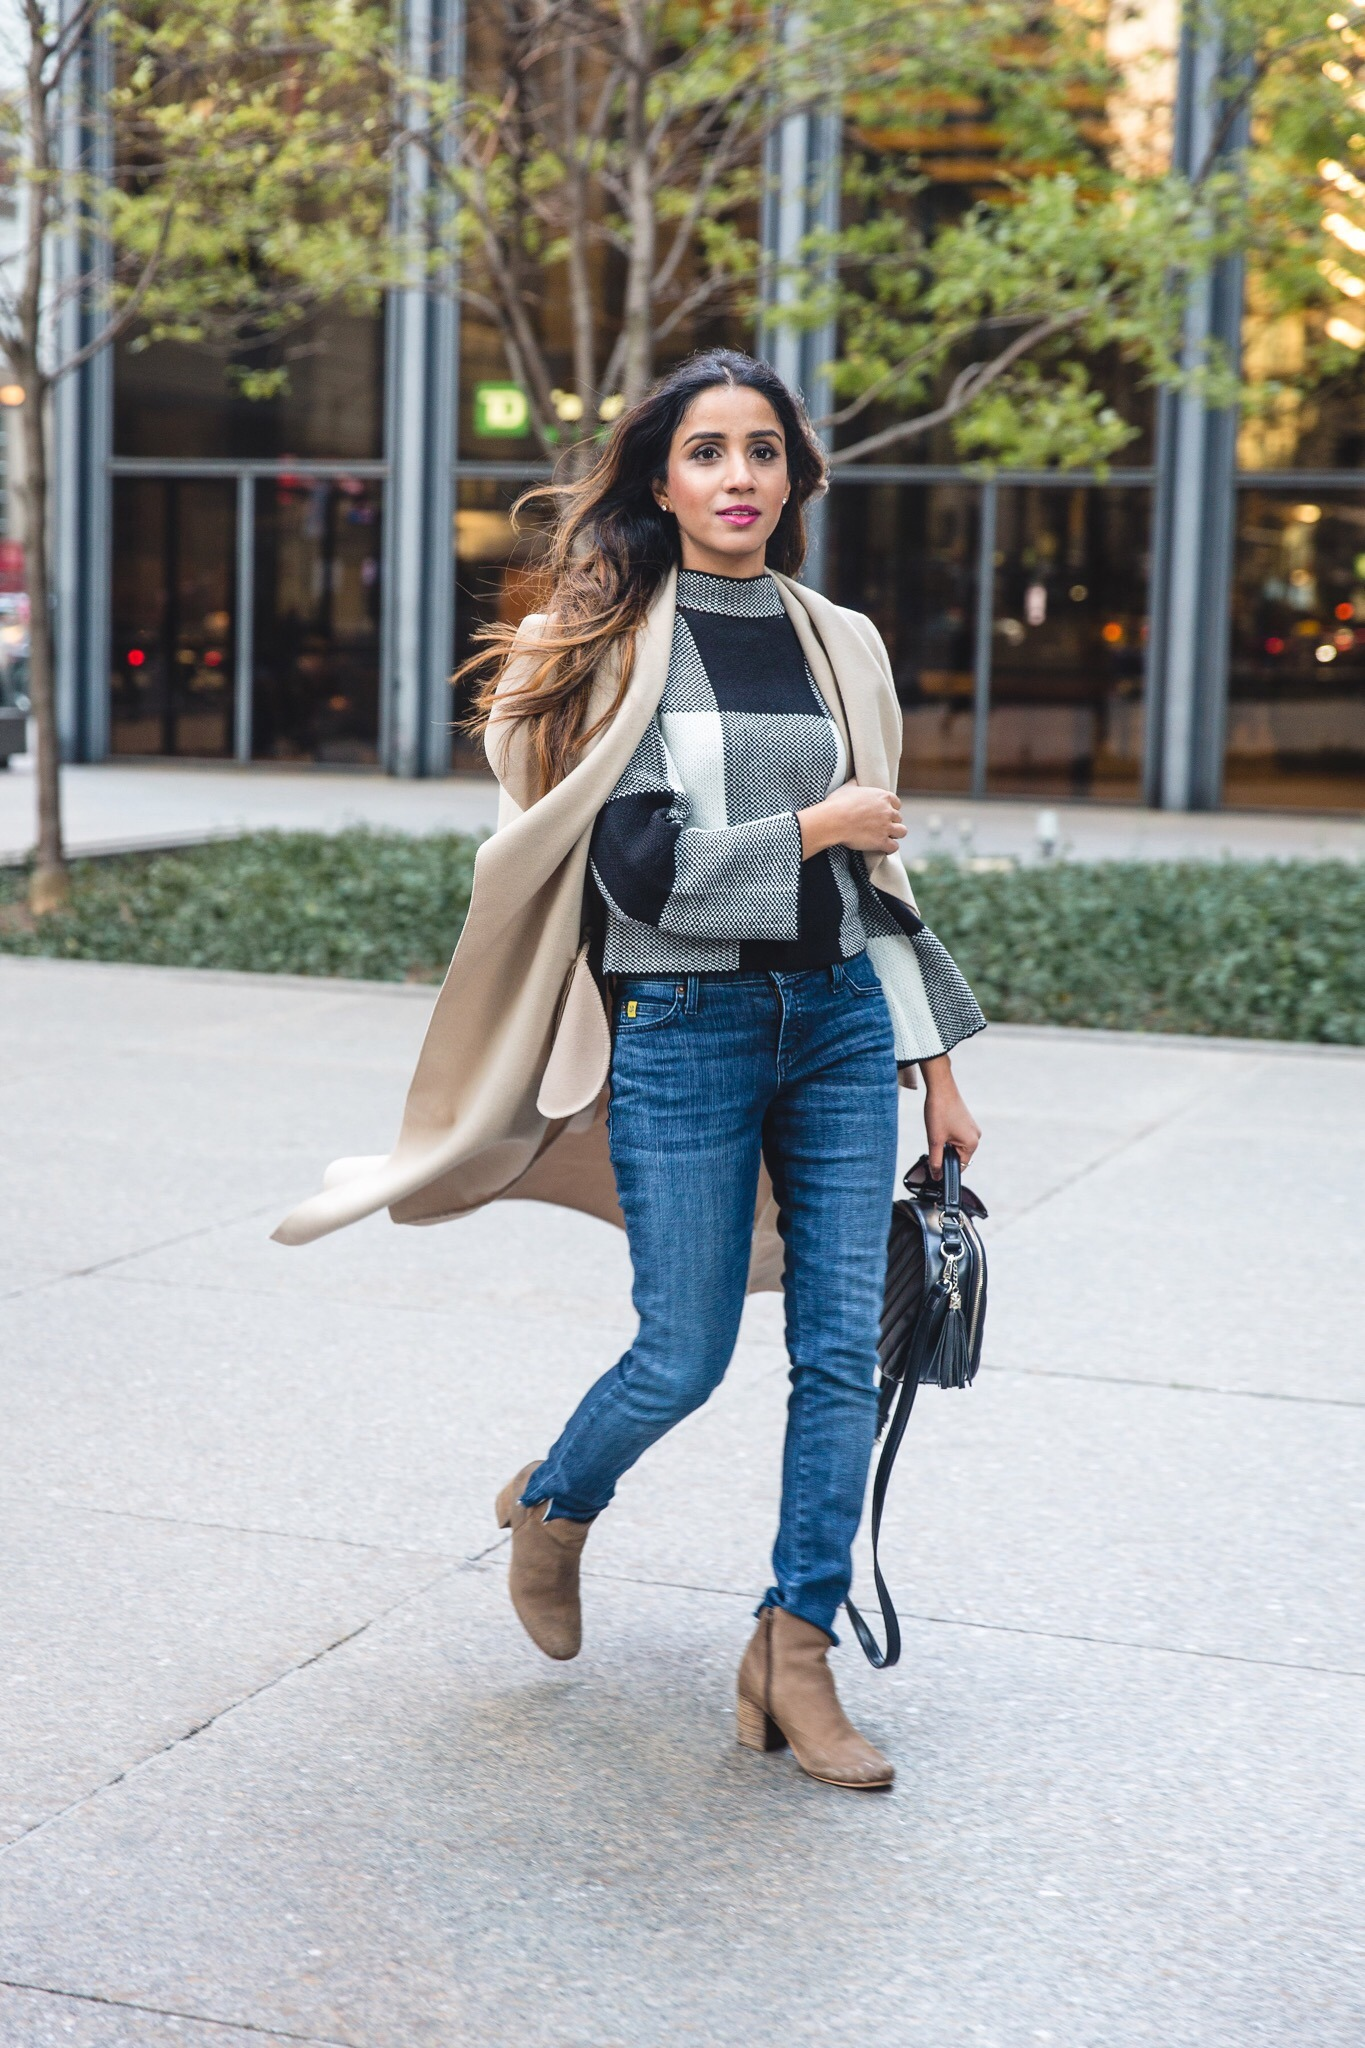 5 Fall Staples You Need in Your Closet sincerelyhumble faiza inam fall wardrobe staples look 2020 must haves full look 2